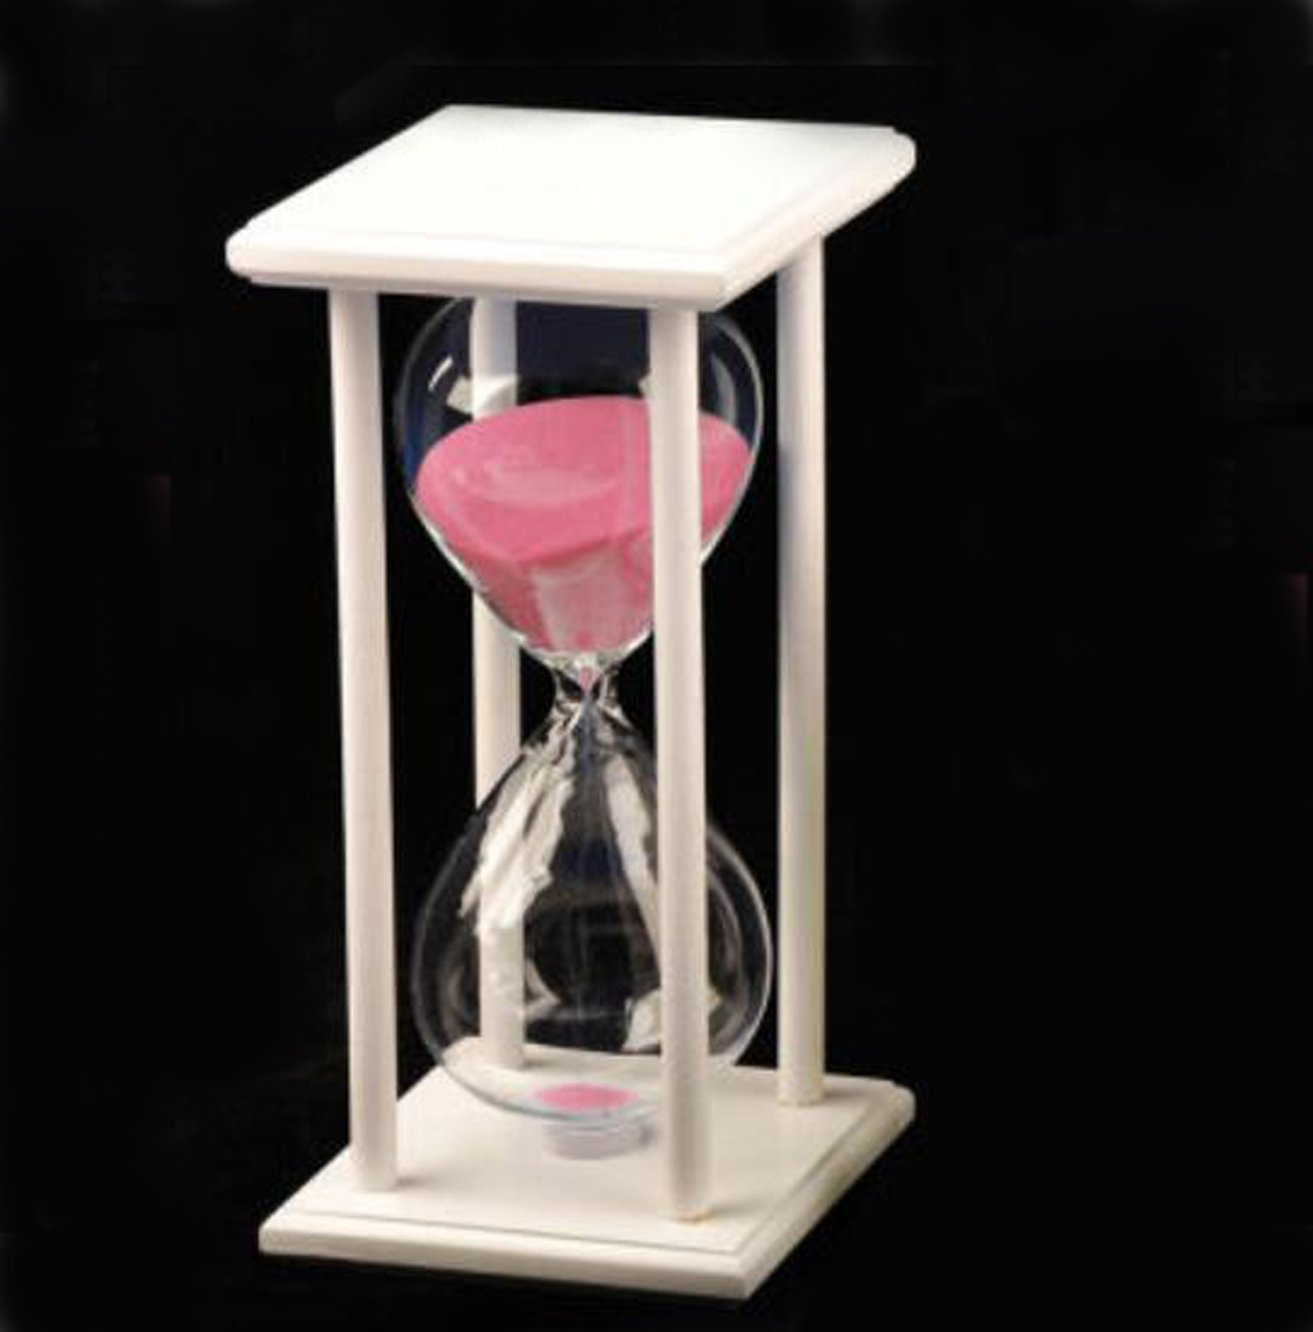 LiMeiW 30 minutes Hourglass Wooden sand Timer 45 Mins Home decoration Kitchen timer (45 minutes white box pink) by LiMeiW (Image #1)